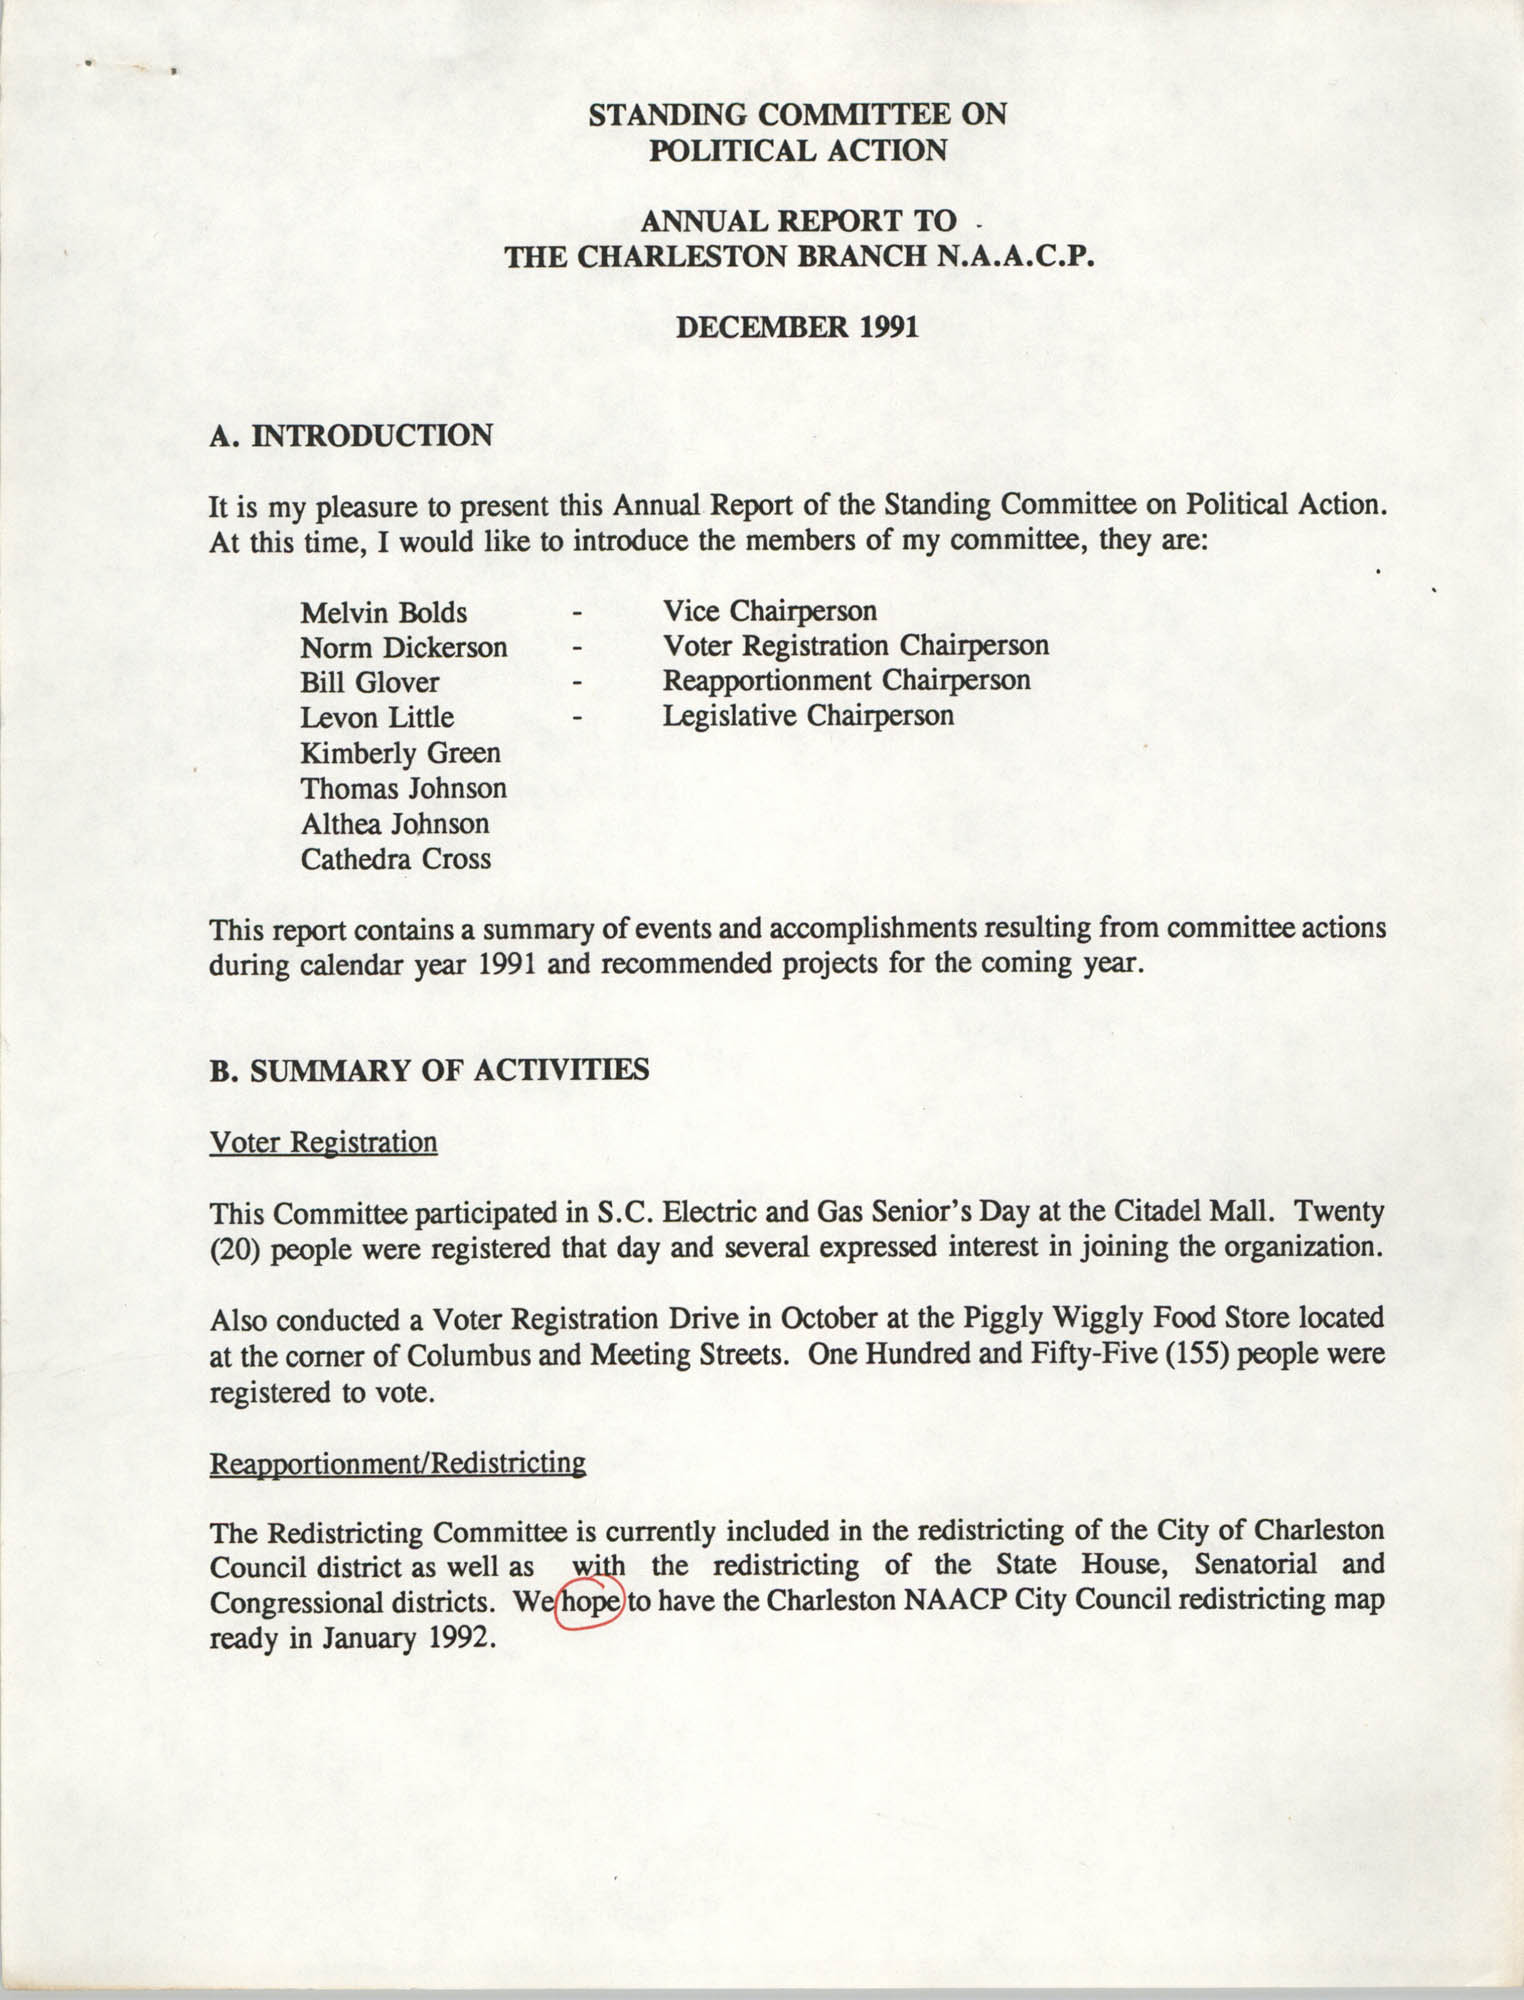 Annual Report, Standing Committee on Political Action, Charleston Branch of the NAACP, December 1991